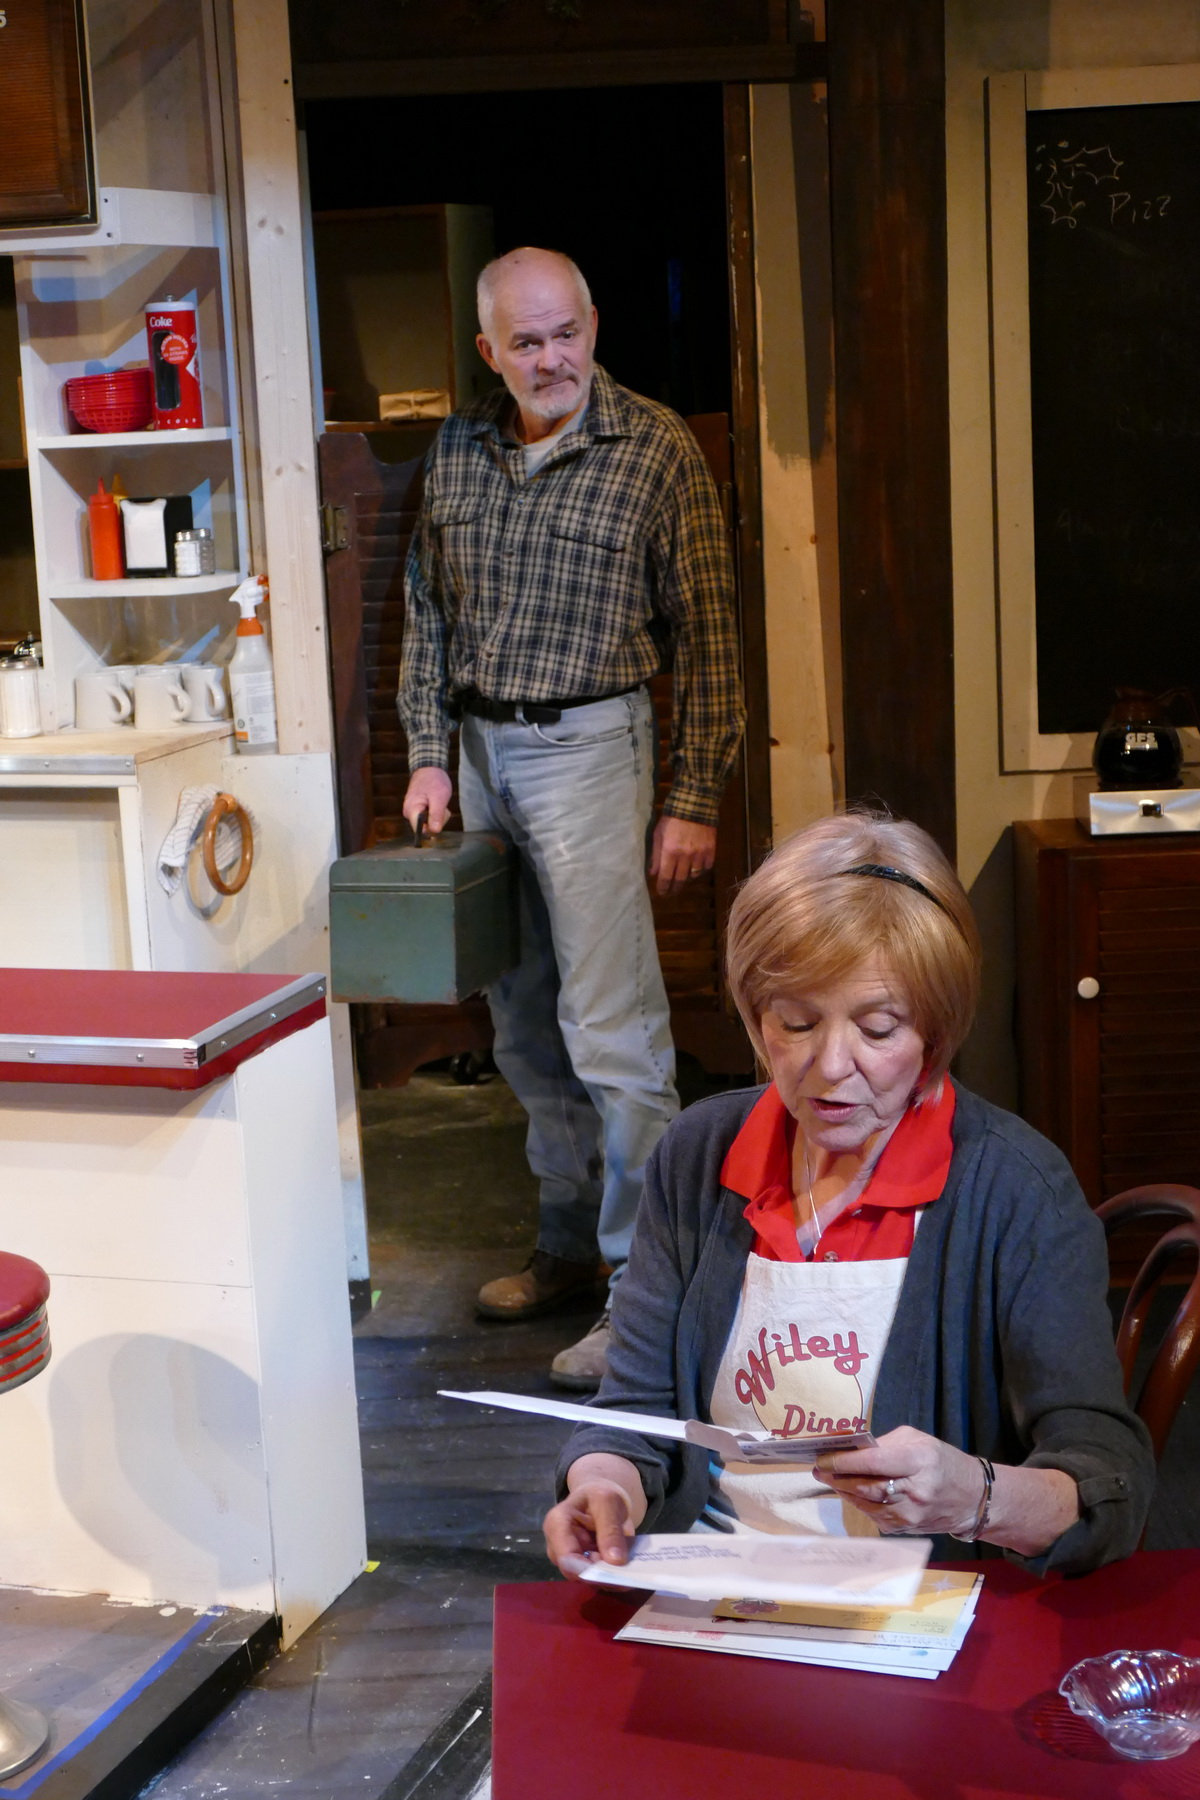 Darrell Starnik as Carter and Anne McEvoy as Sheila Banks